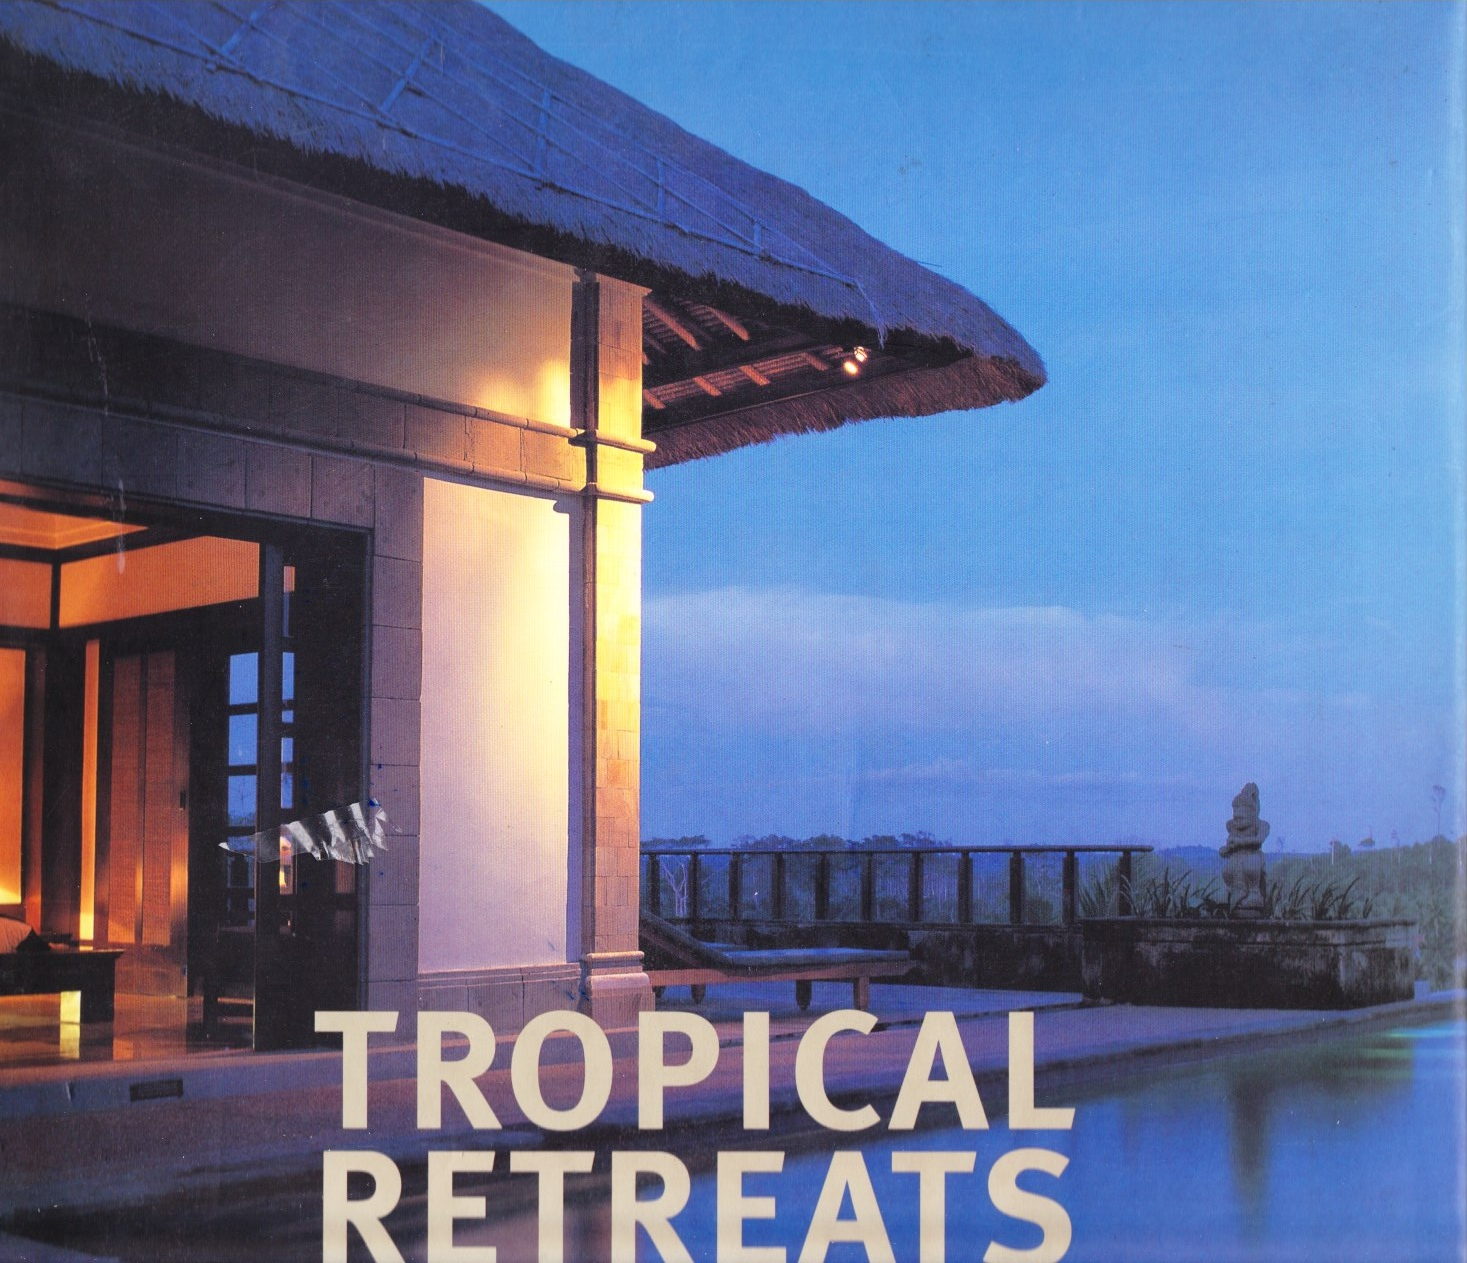 Image for Tropical Retreats The Poetics of Place